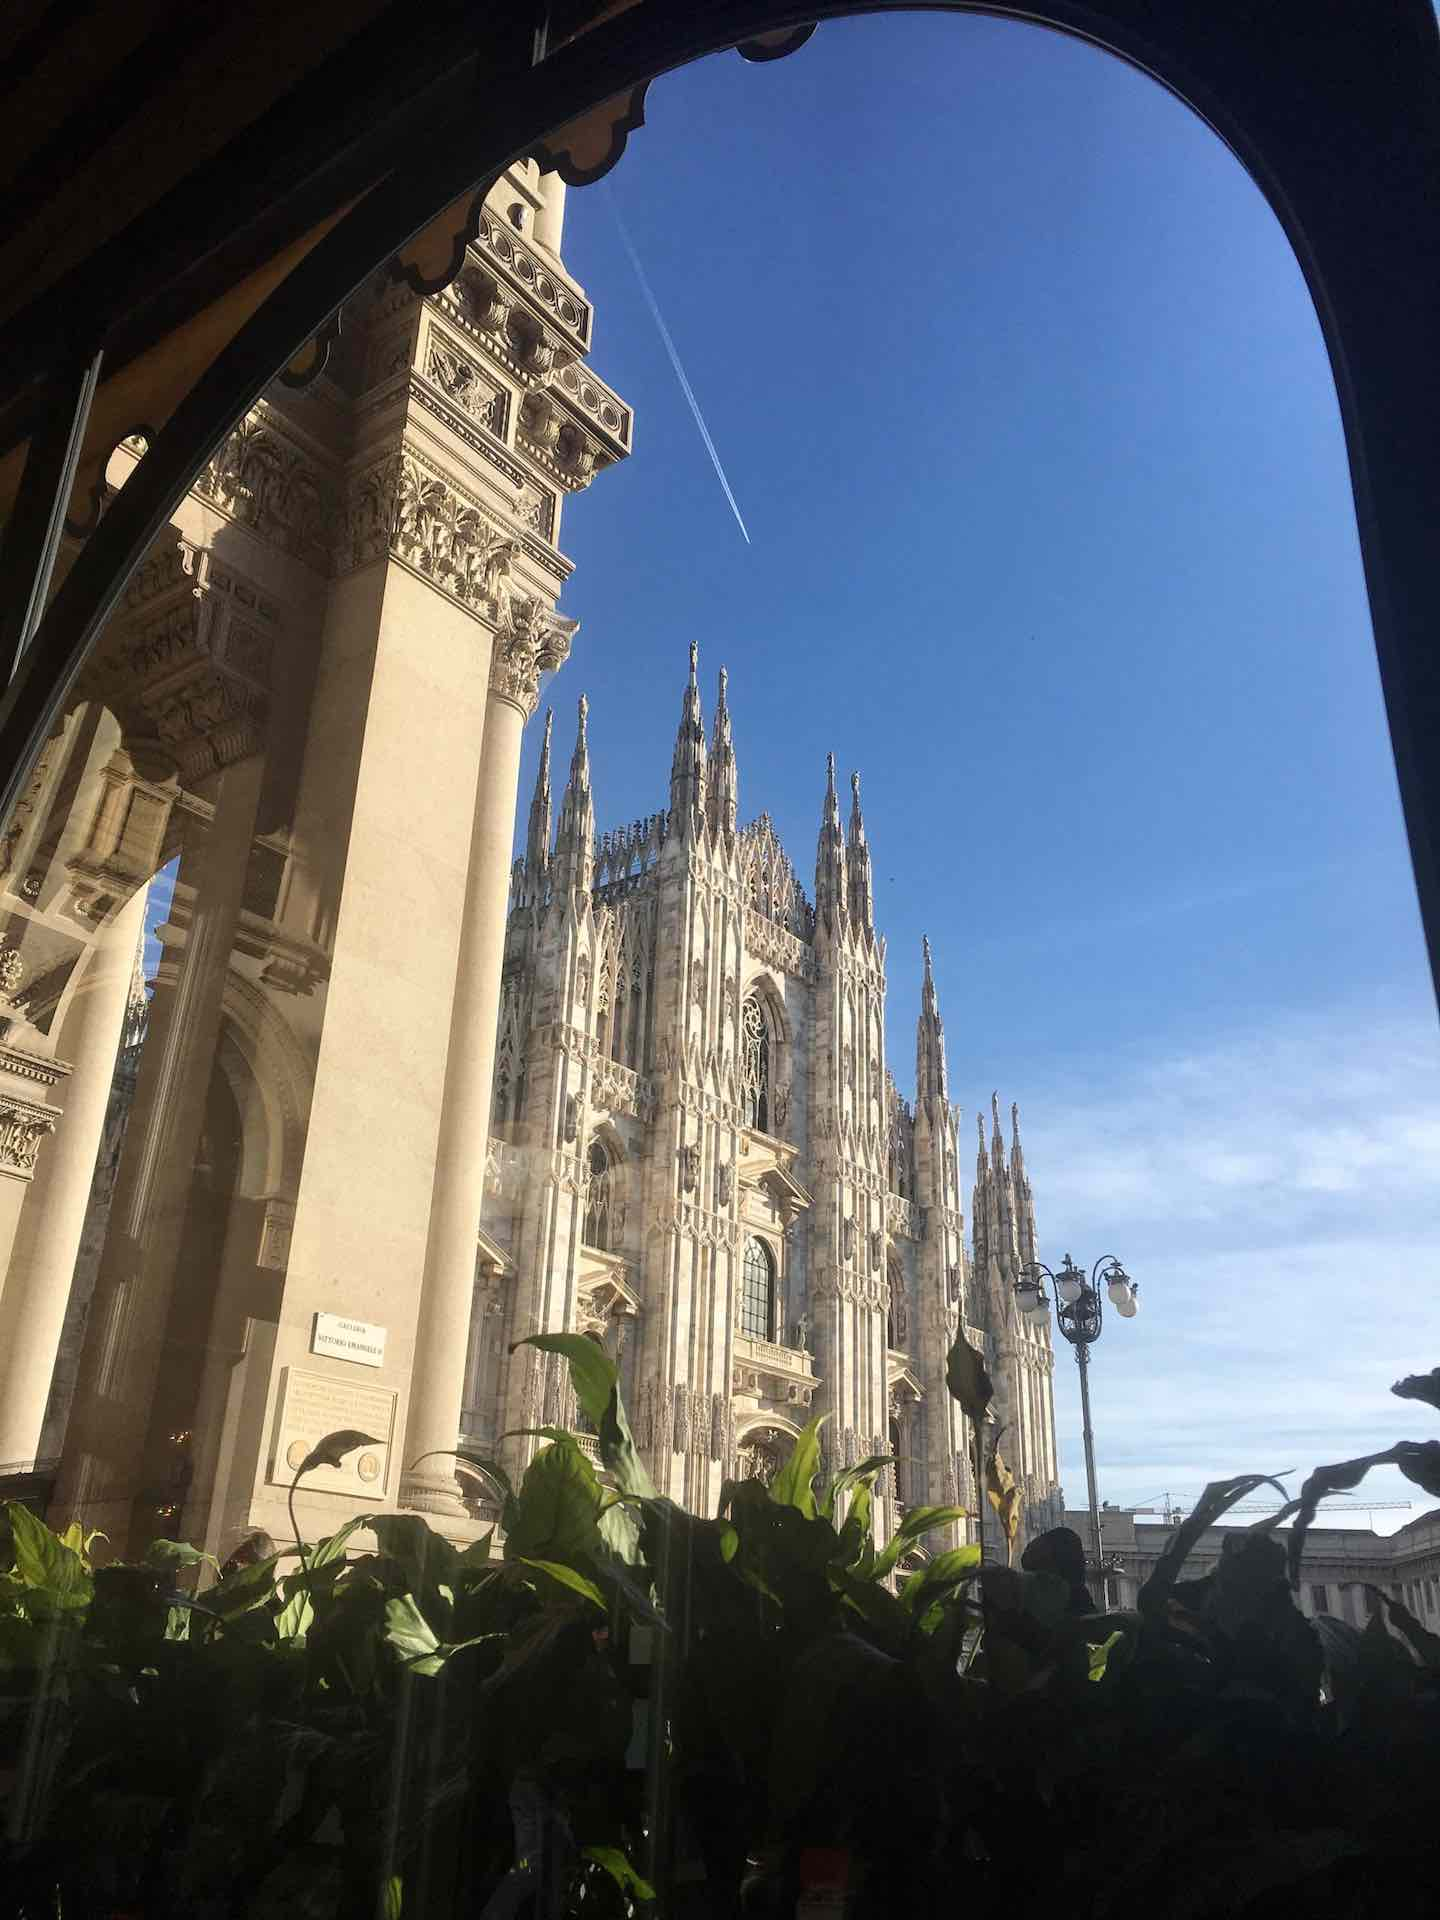 View of Milan's Duomo from Camparino in Galleria | Image © ExpatAlli.com